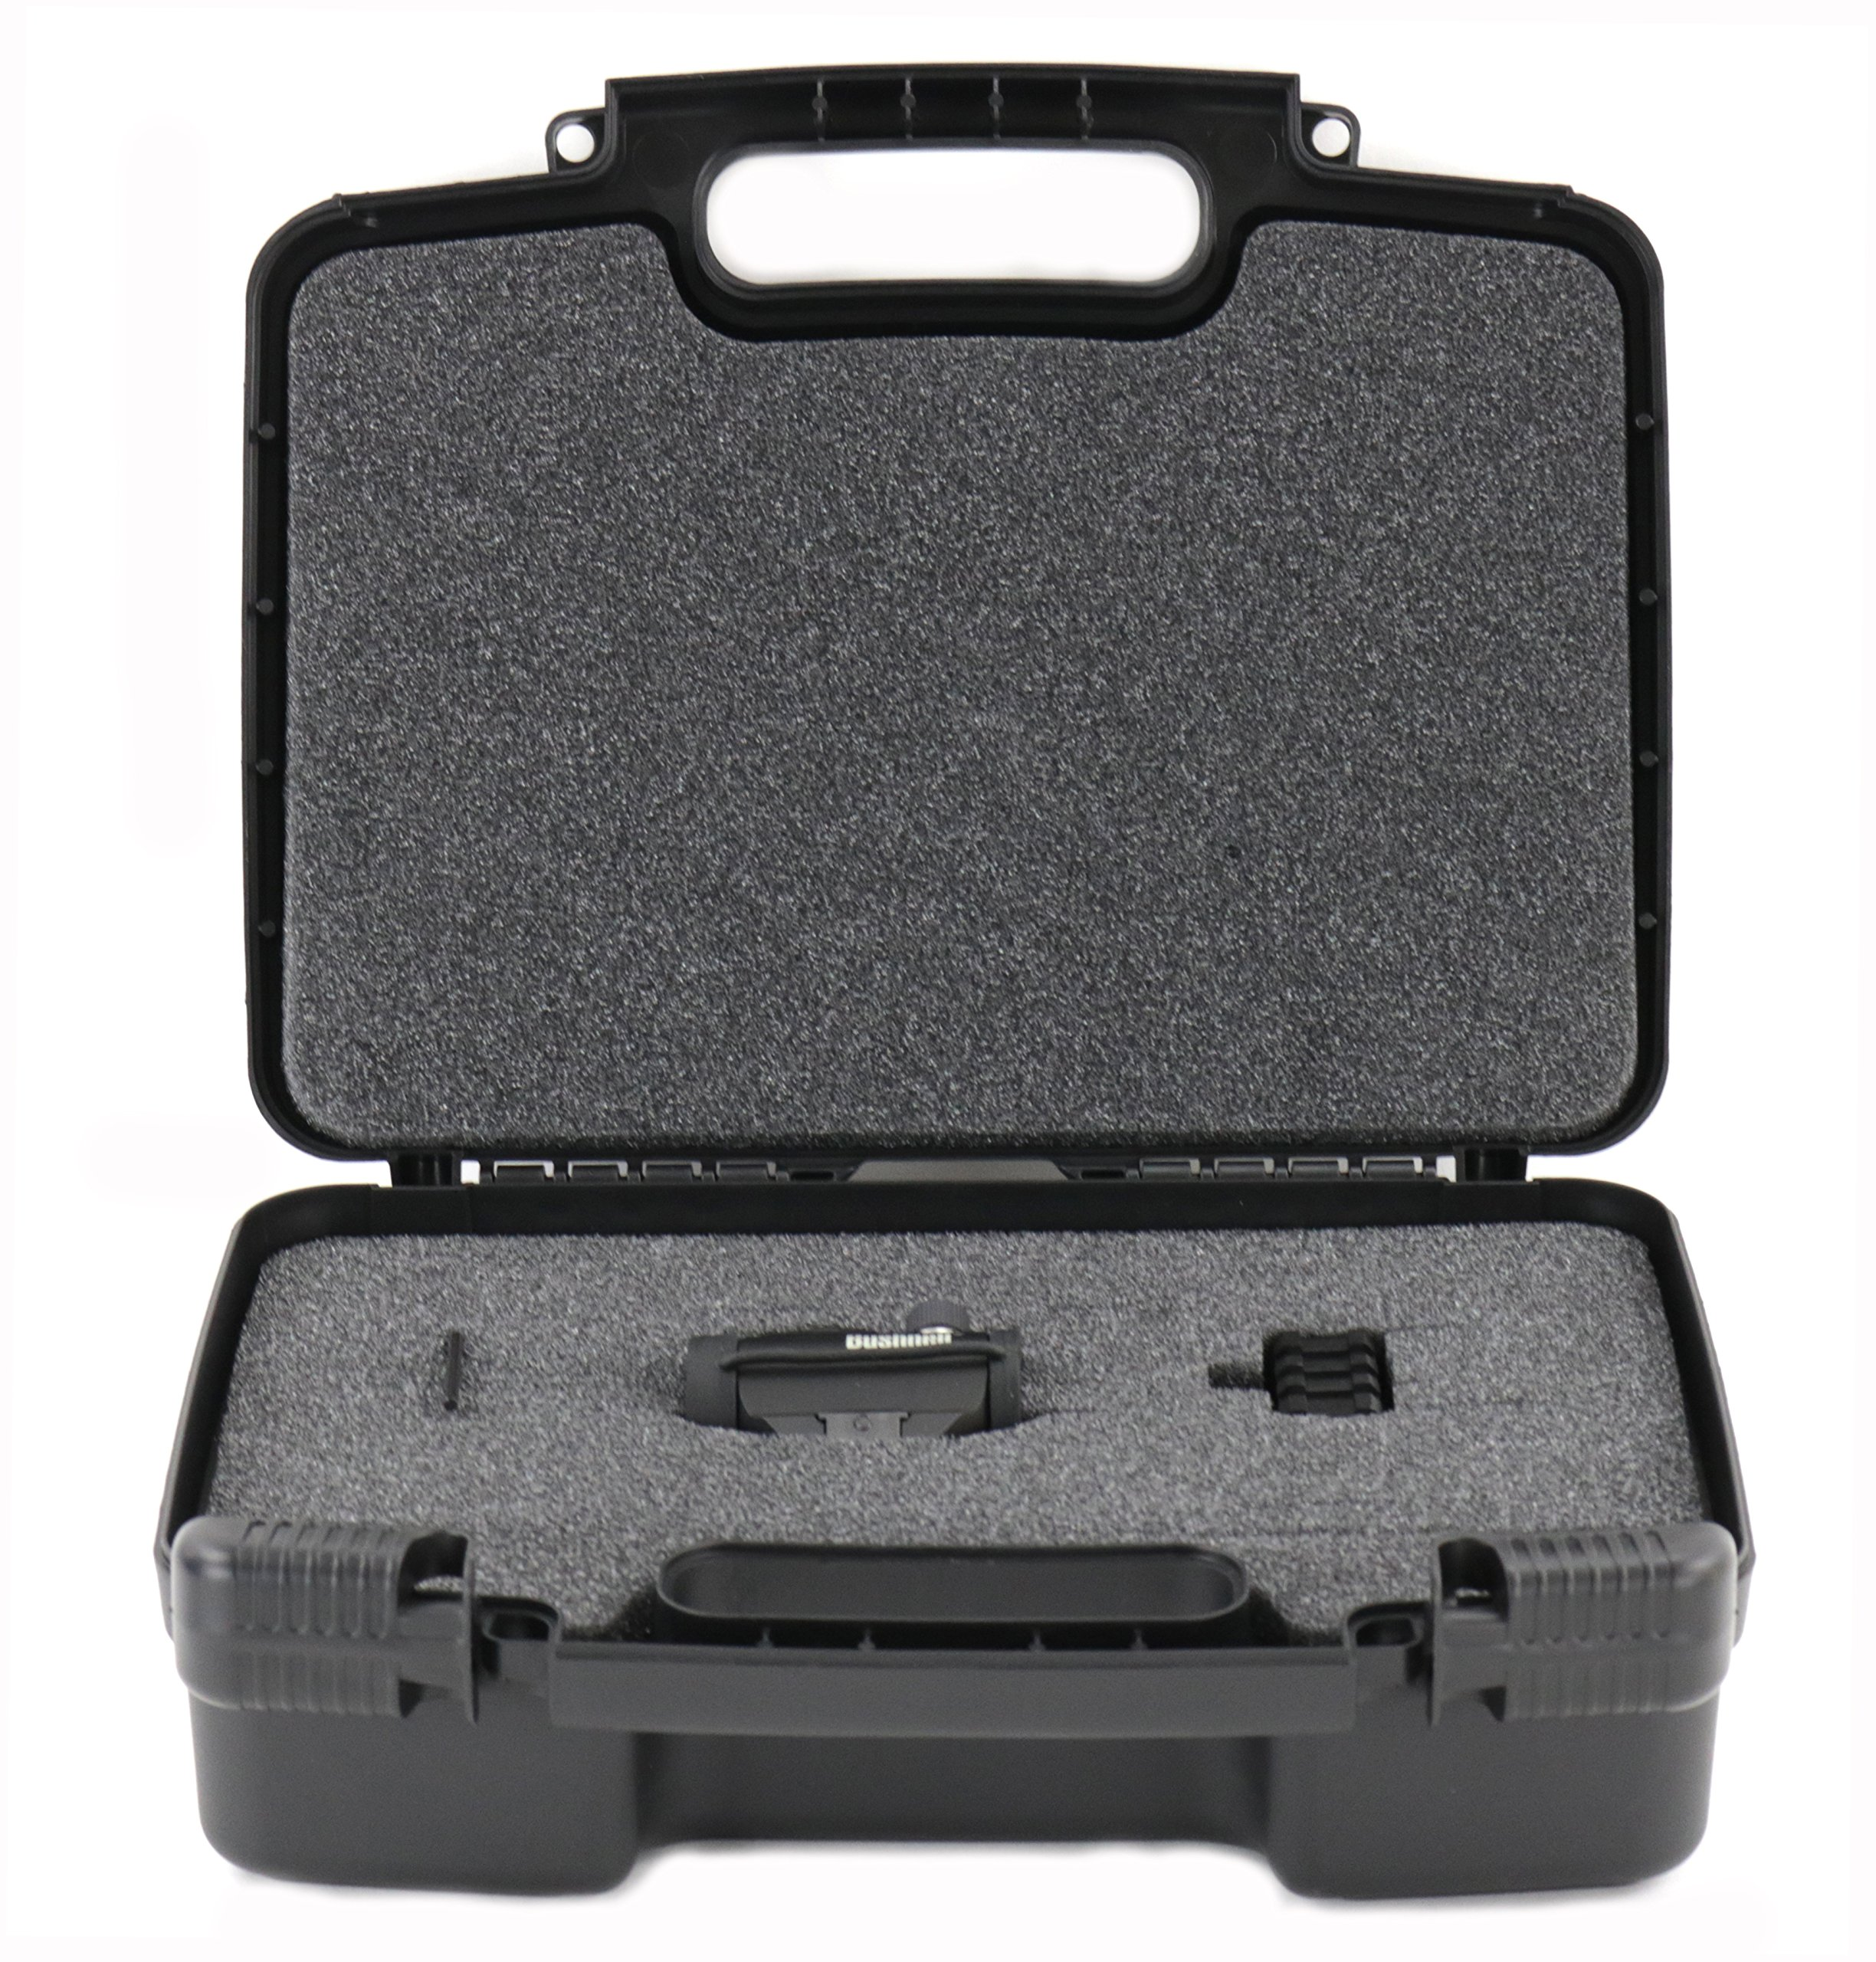 Life Made Better Storage Organizer - Compatible with UTG Med-pro Compact Riser Mount, Streamlight 69260 TLR-1 HL Weapon Mount Tactical Flashlight Durable Carrying Case - Black